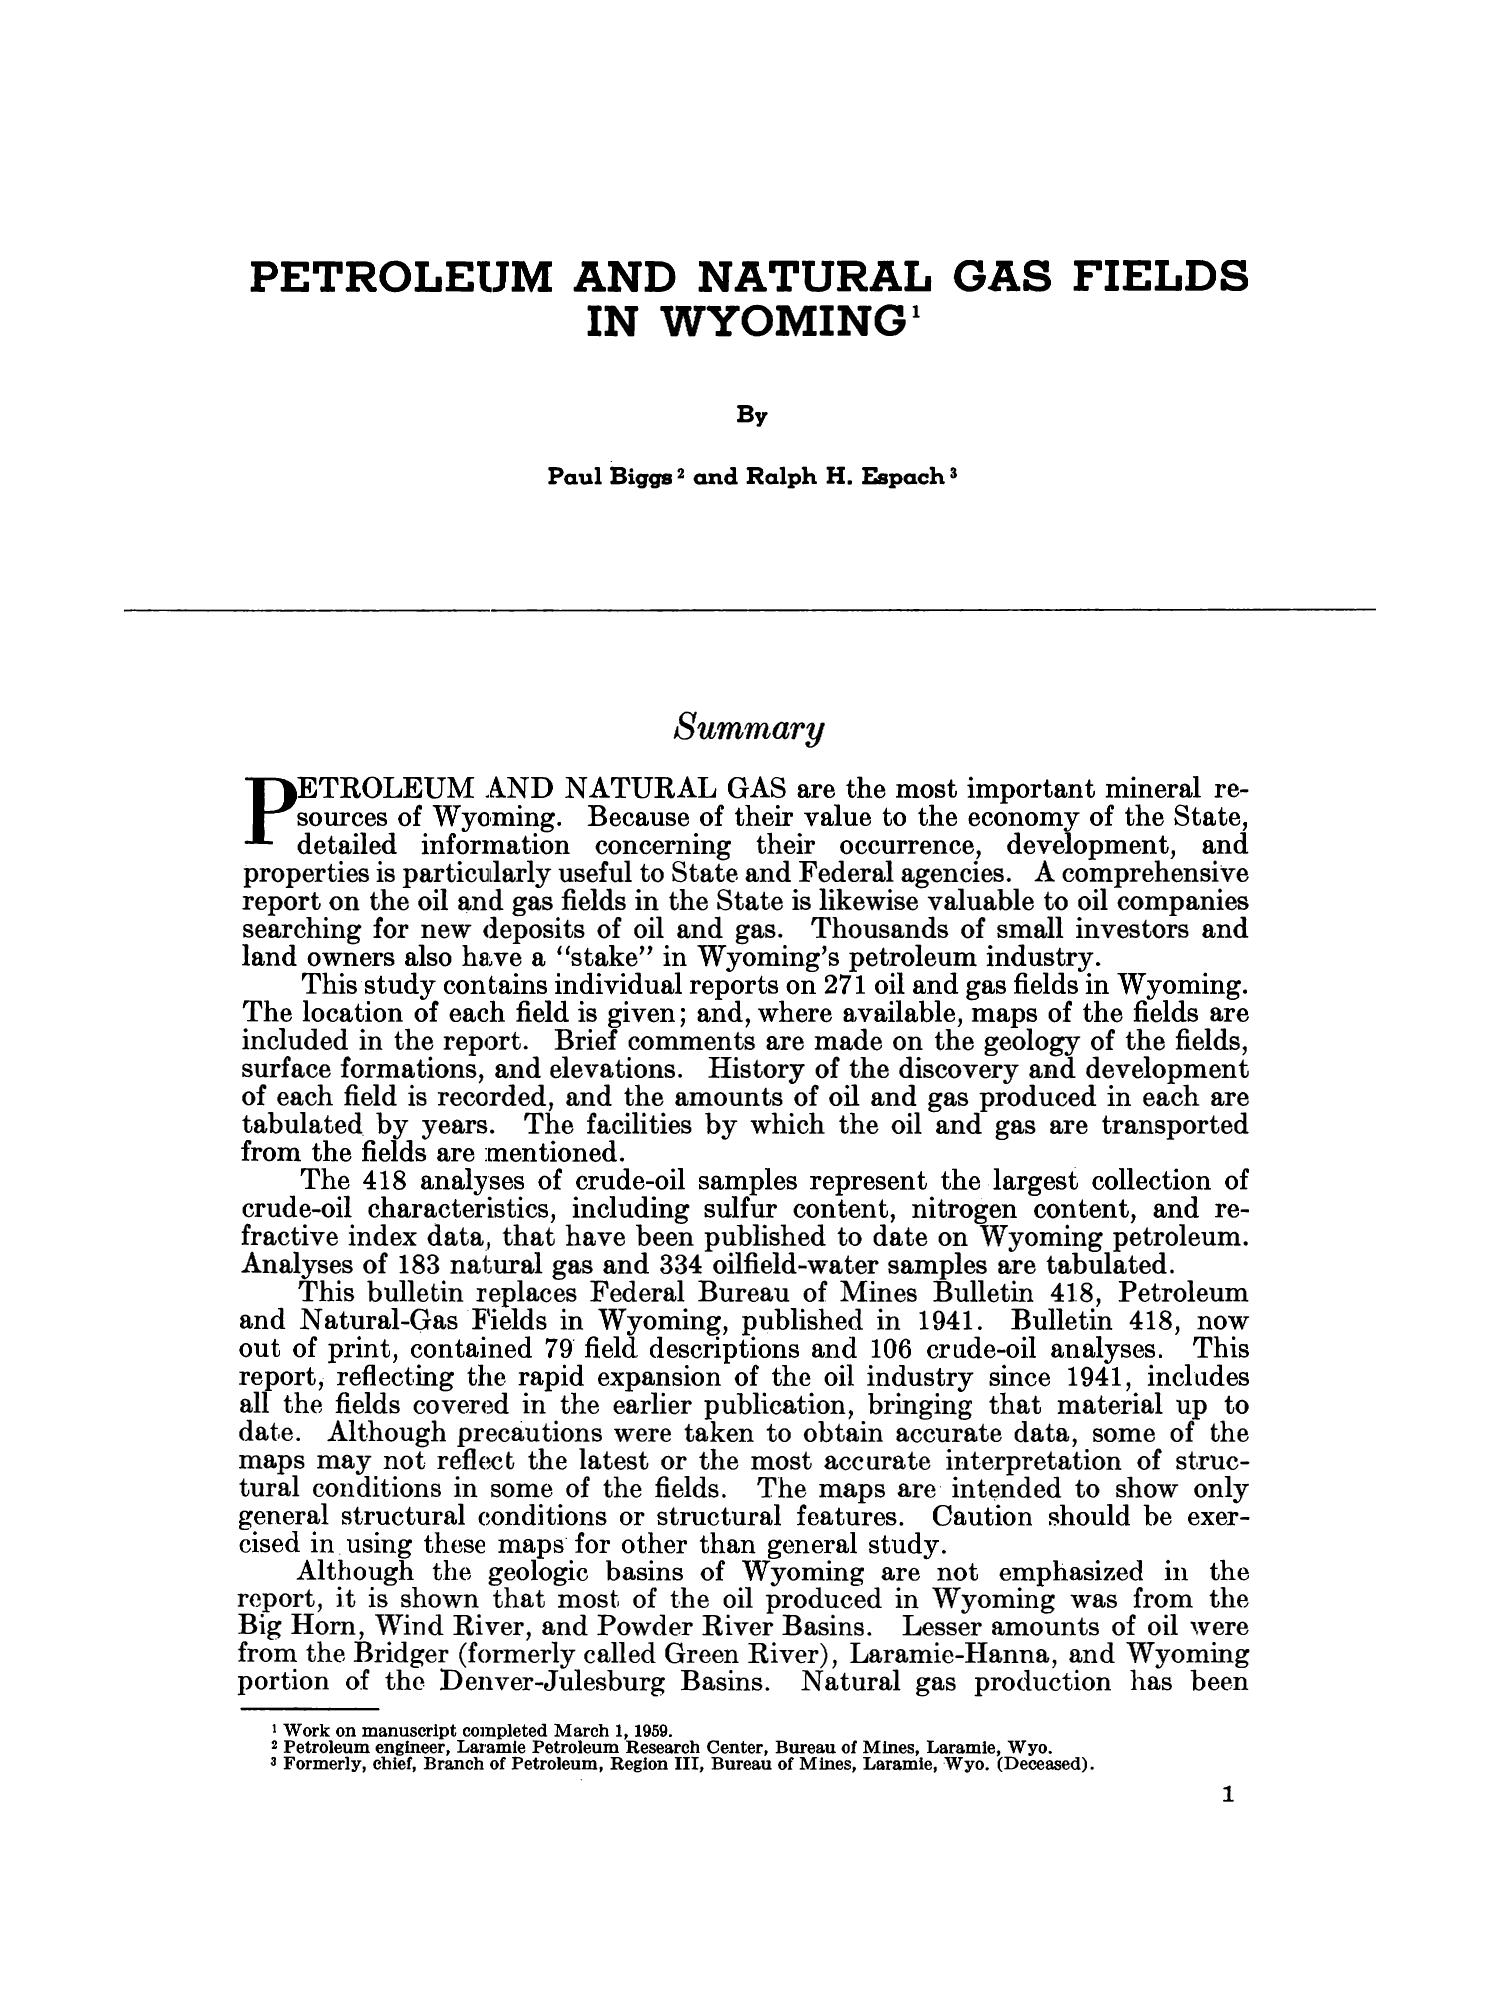 Petroleum and Natural Gas Fields in Wyoming                                                                                                      1